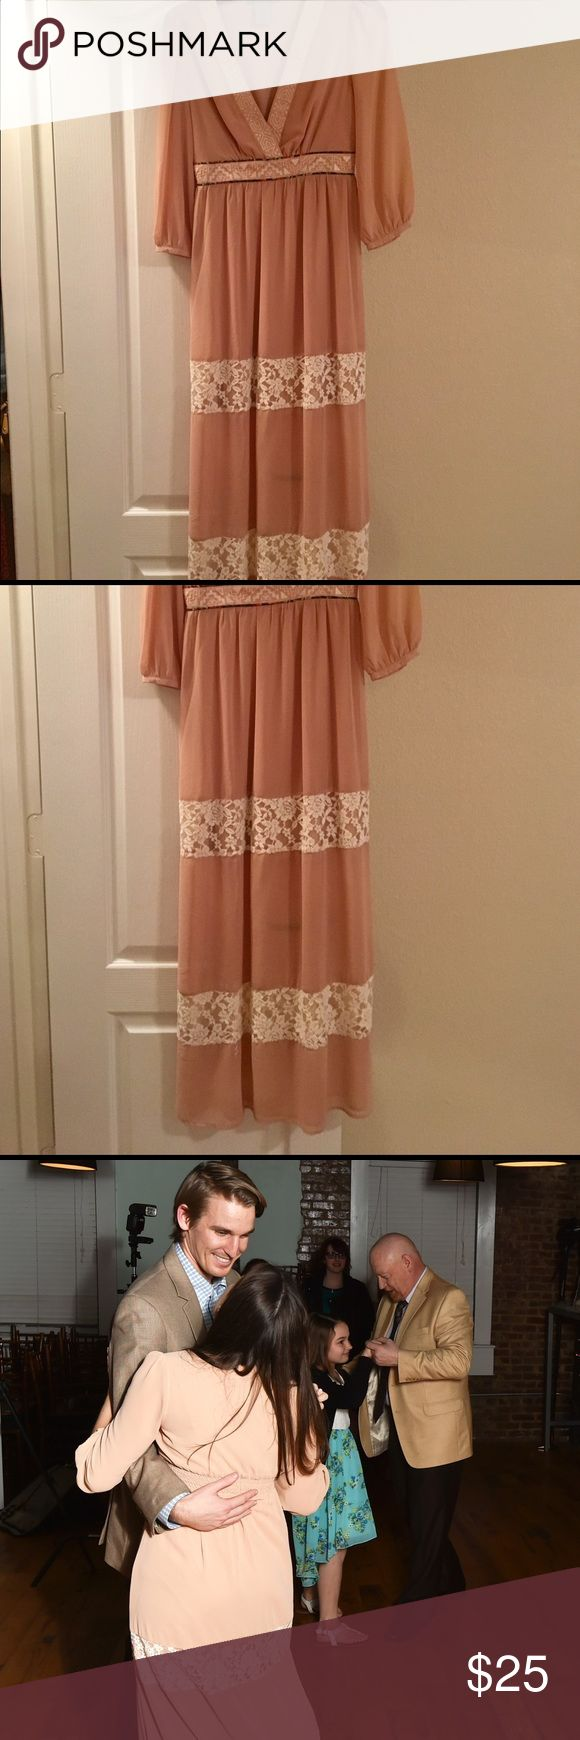 Blush Maxi Dress | Aztec Maxi Dress | Lace Maxi Gorgeous maxi dress | worn once, see above | side zipper closure | Aztec detail and lace panel | partially lined | Size Small, fits sizes 2-6 easily | I am a 32D and the top fits very well and comfortably | dry cleaned after wear | perfect condition + a great addition to your spring wardrobe! Dresses Maxi